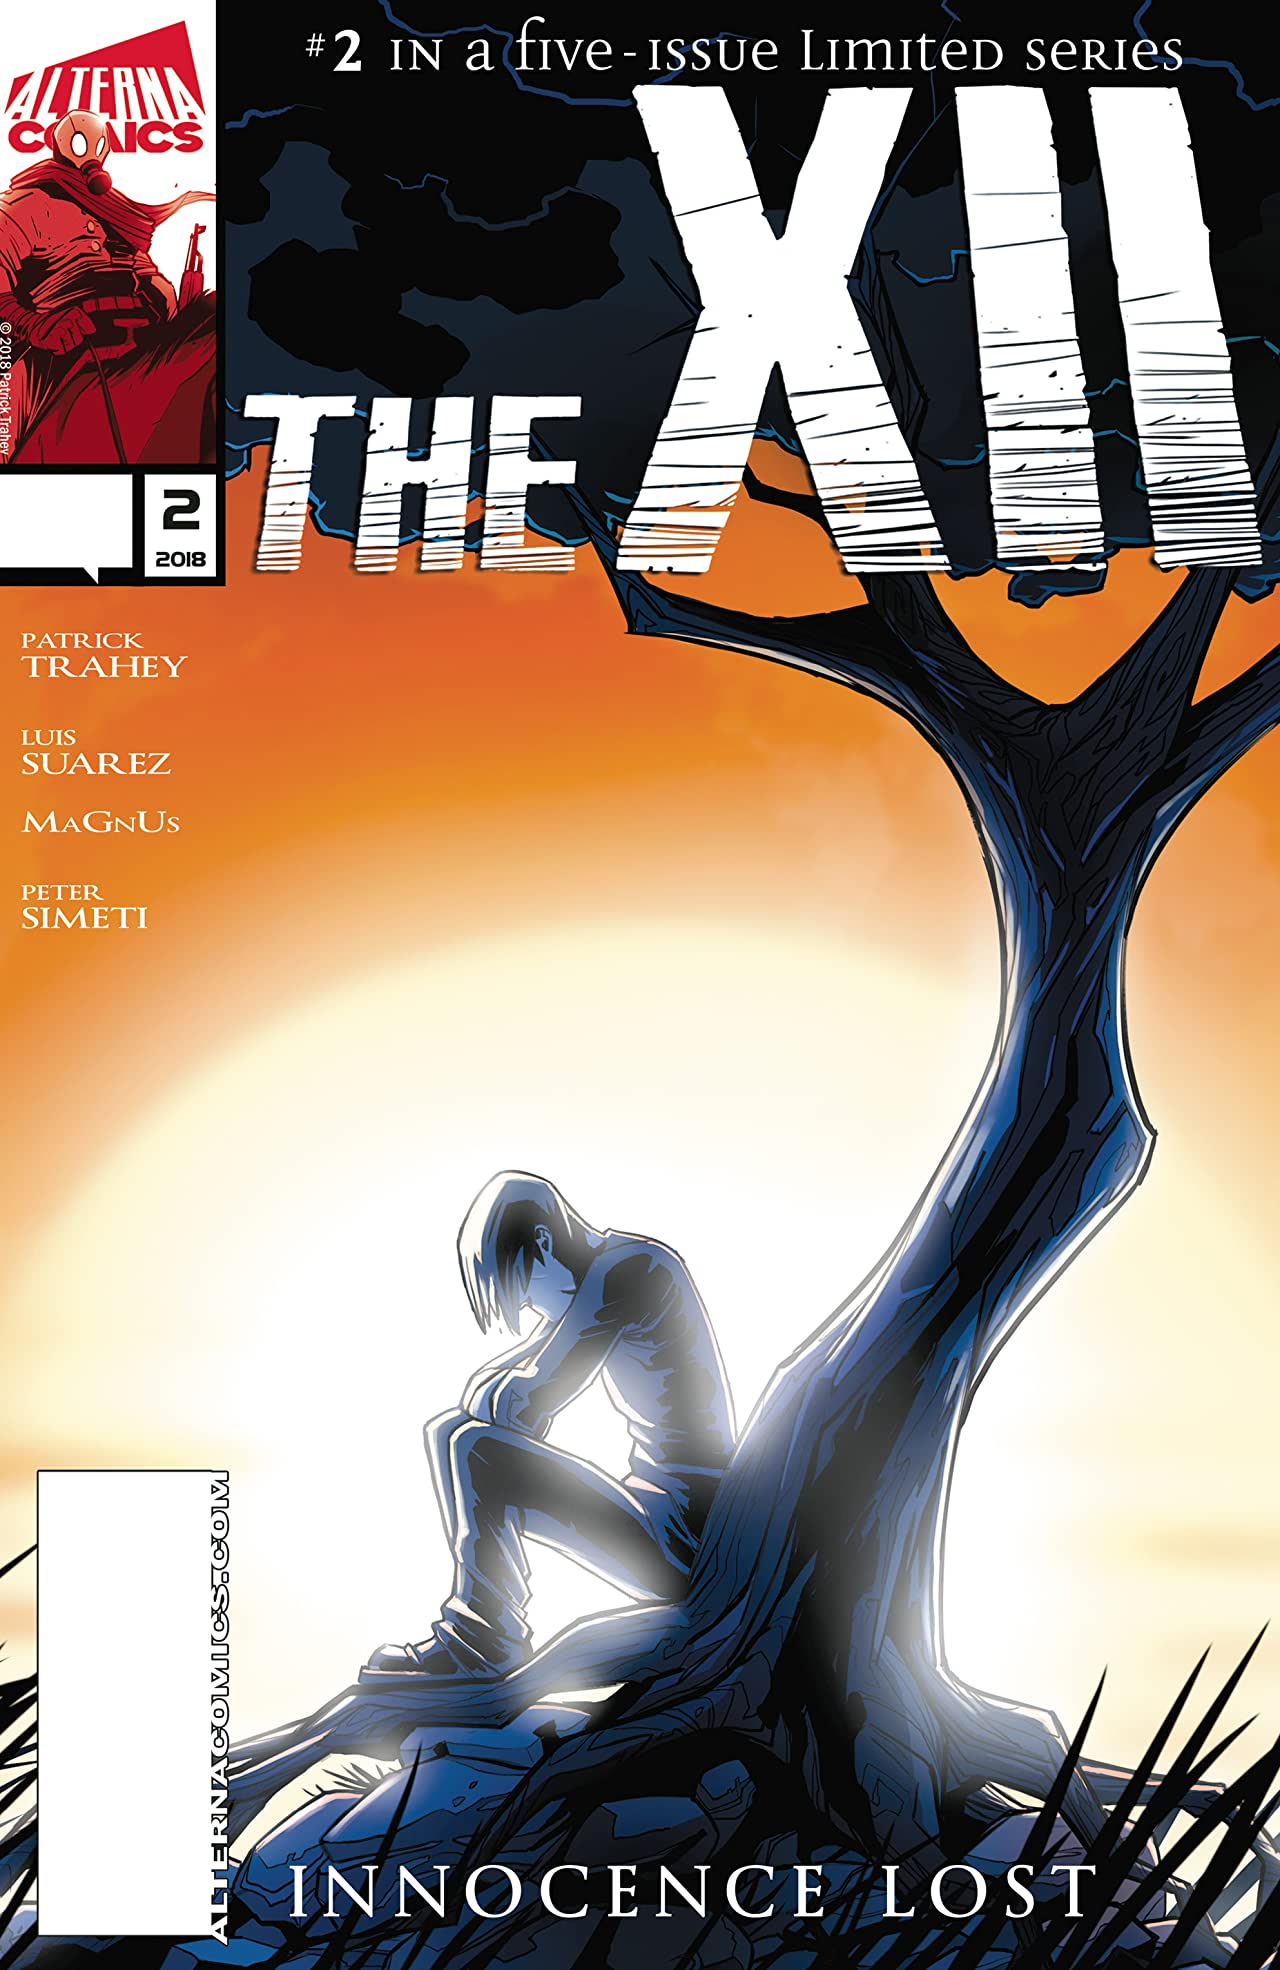 The XII: The Father #2